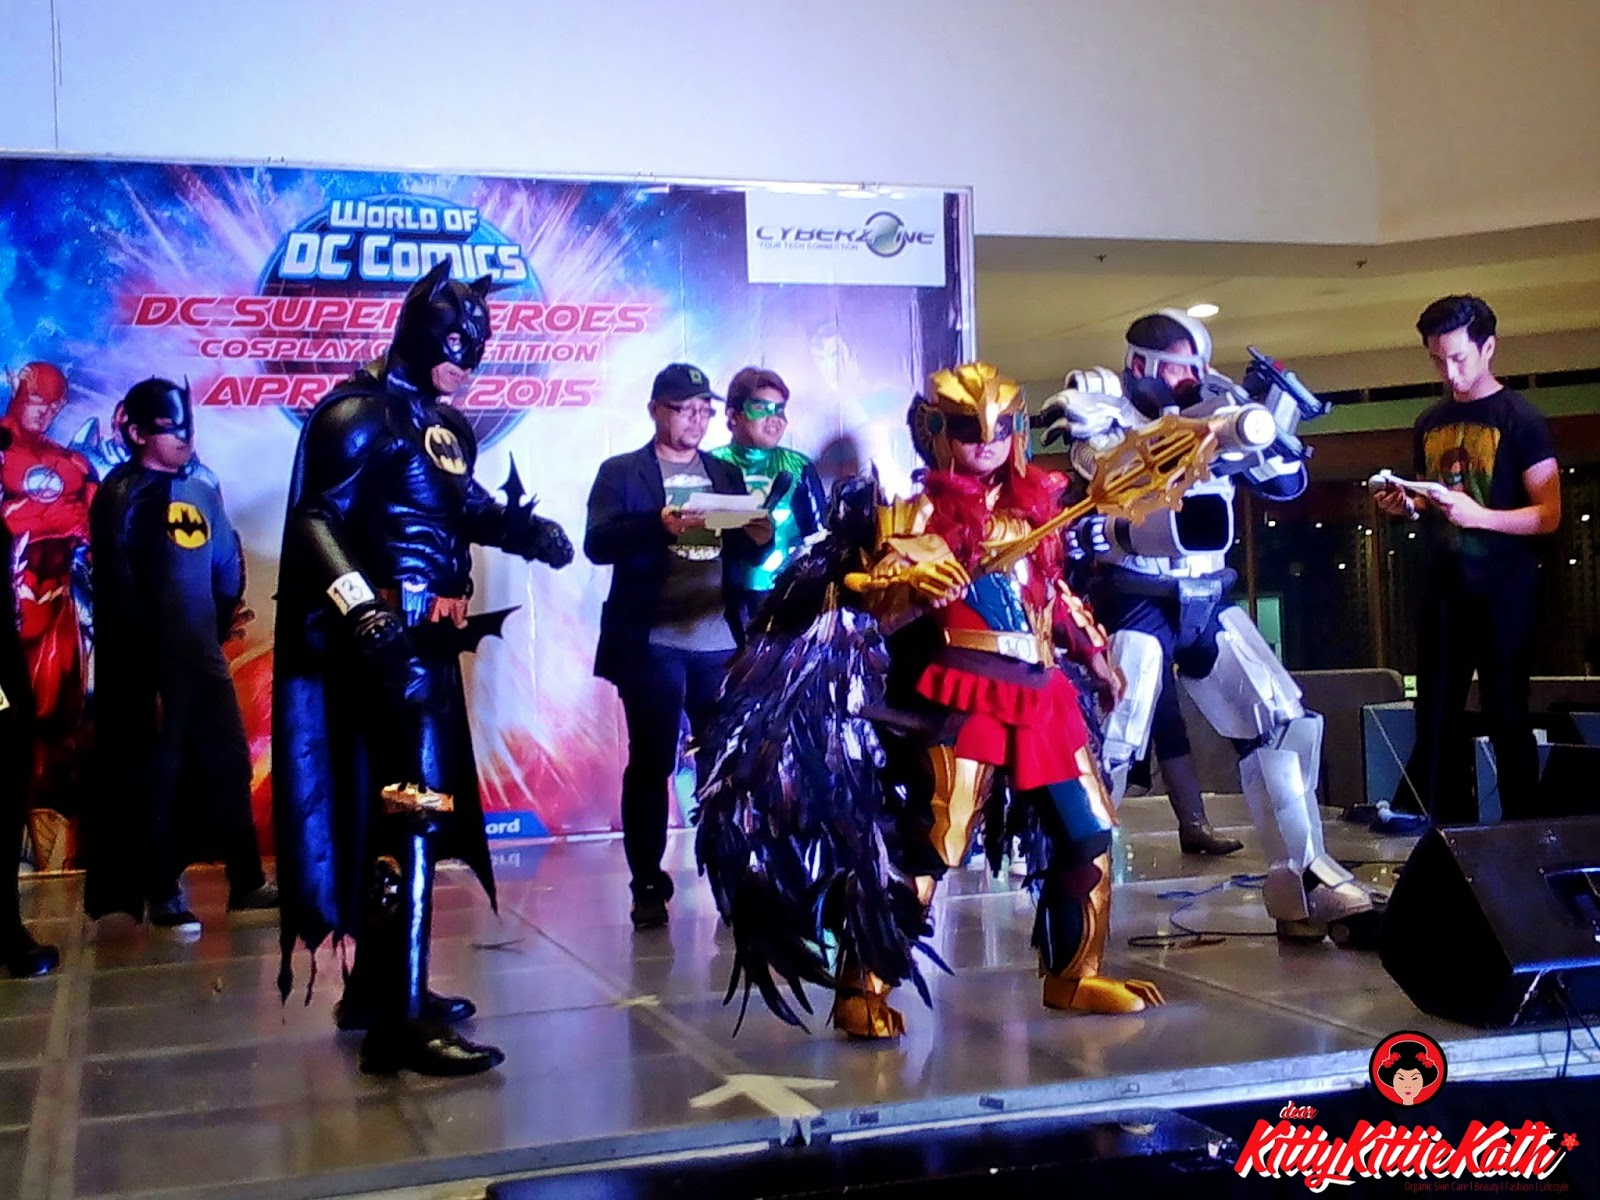 DC Pocket Cosplay at SM City Fairview